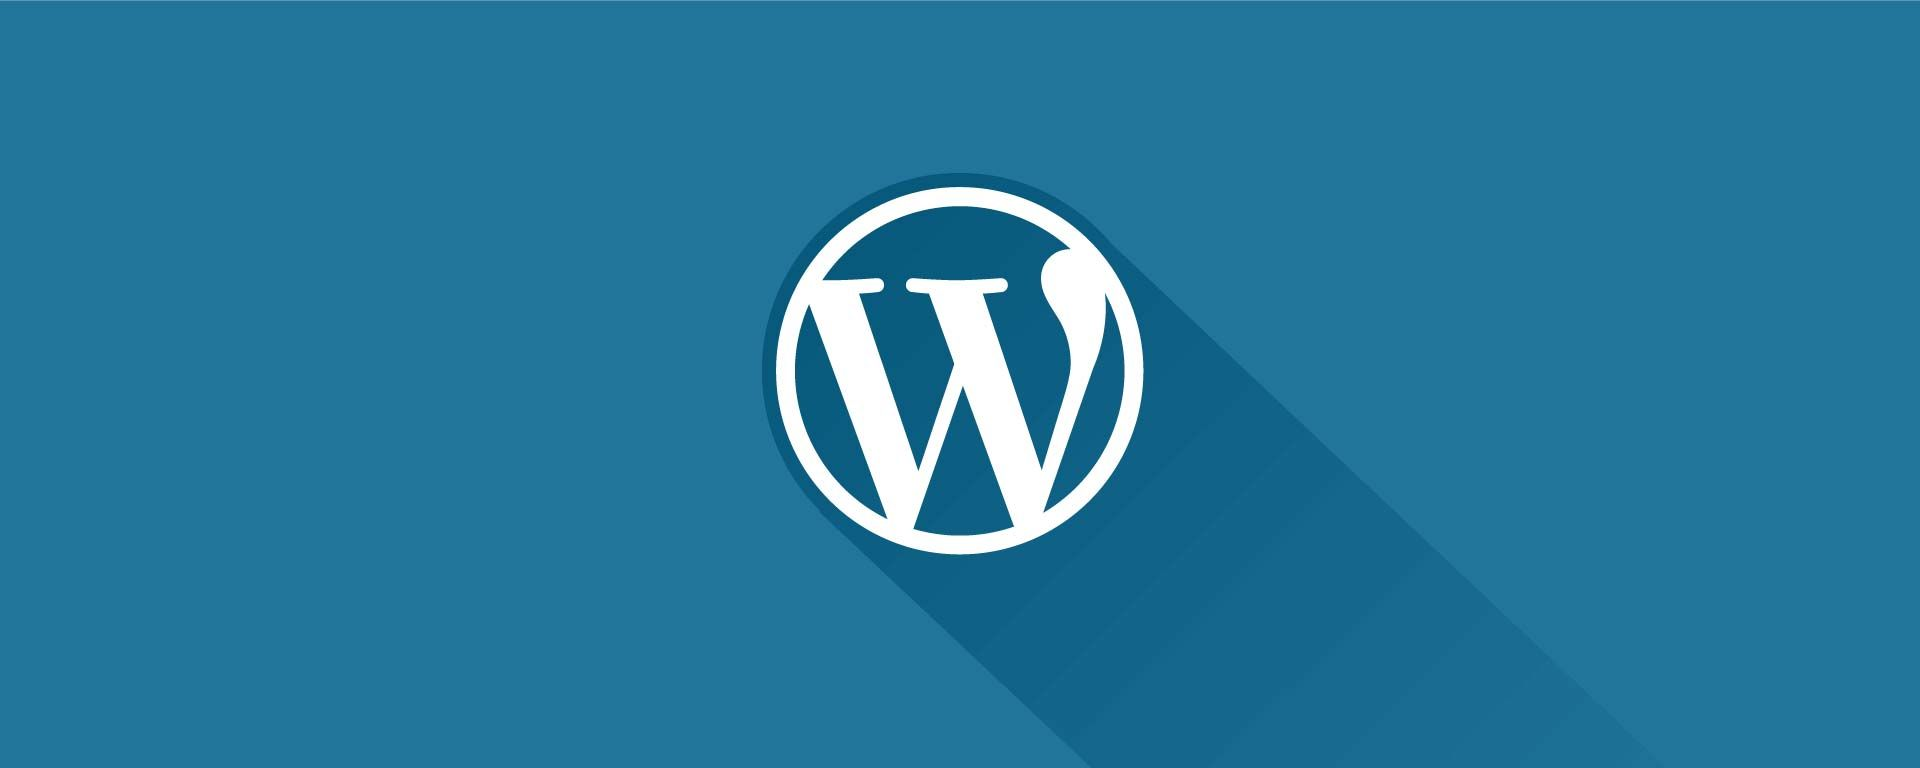 WordPress Web Design in Marin